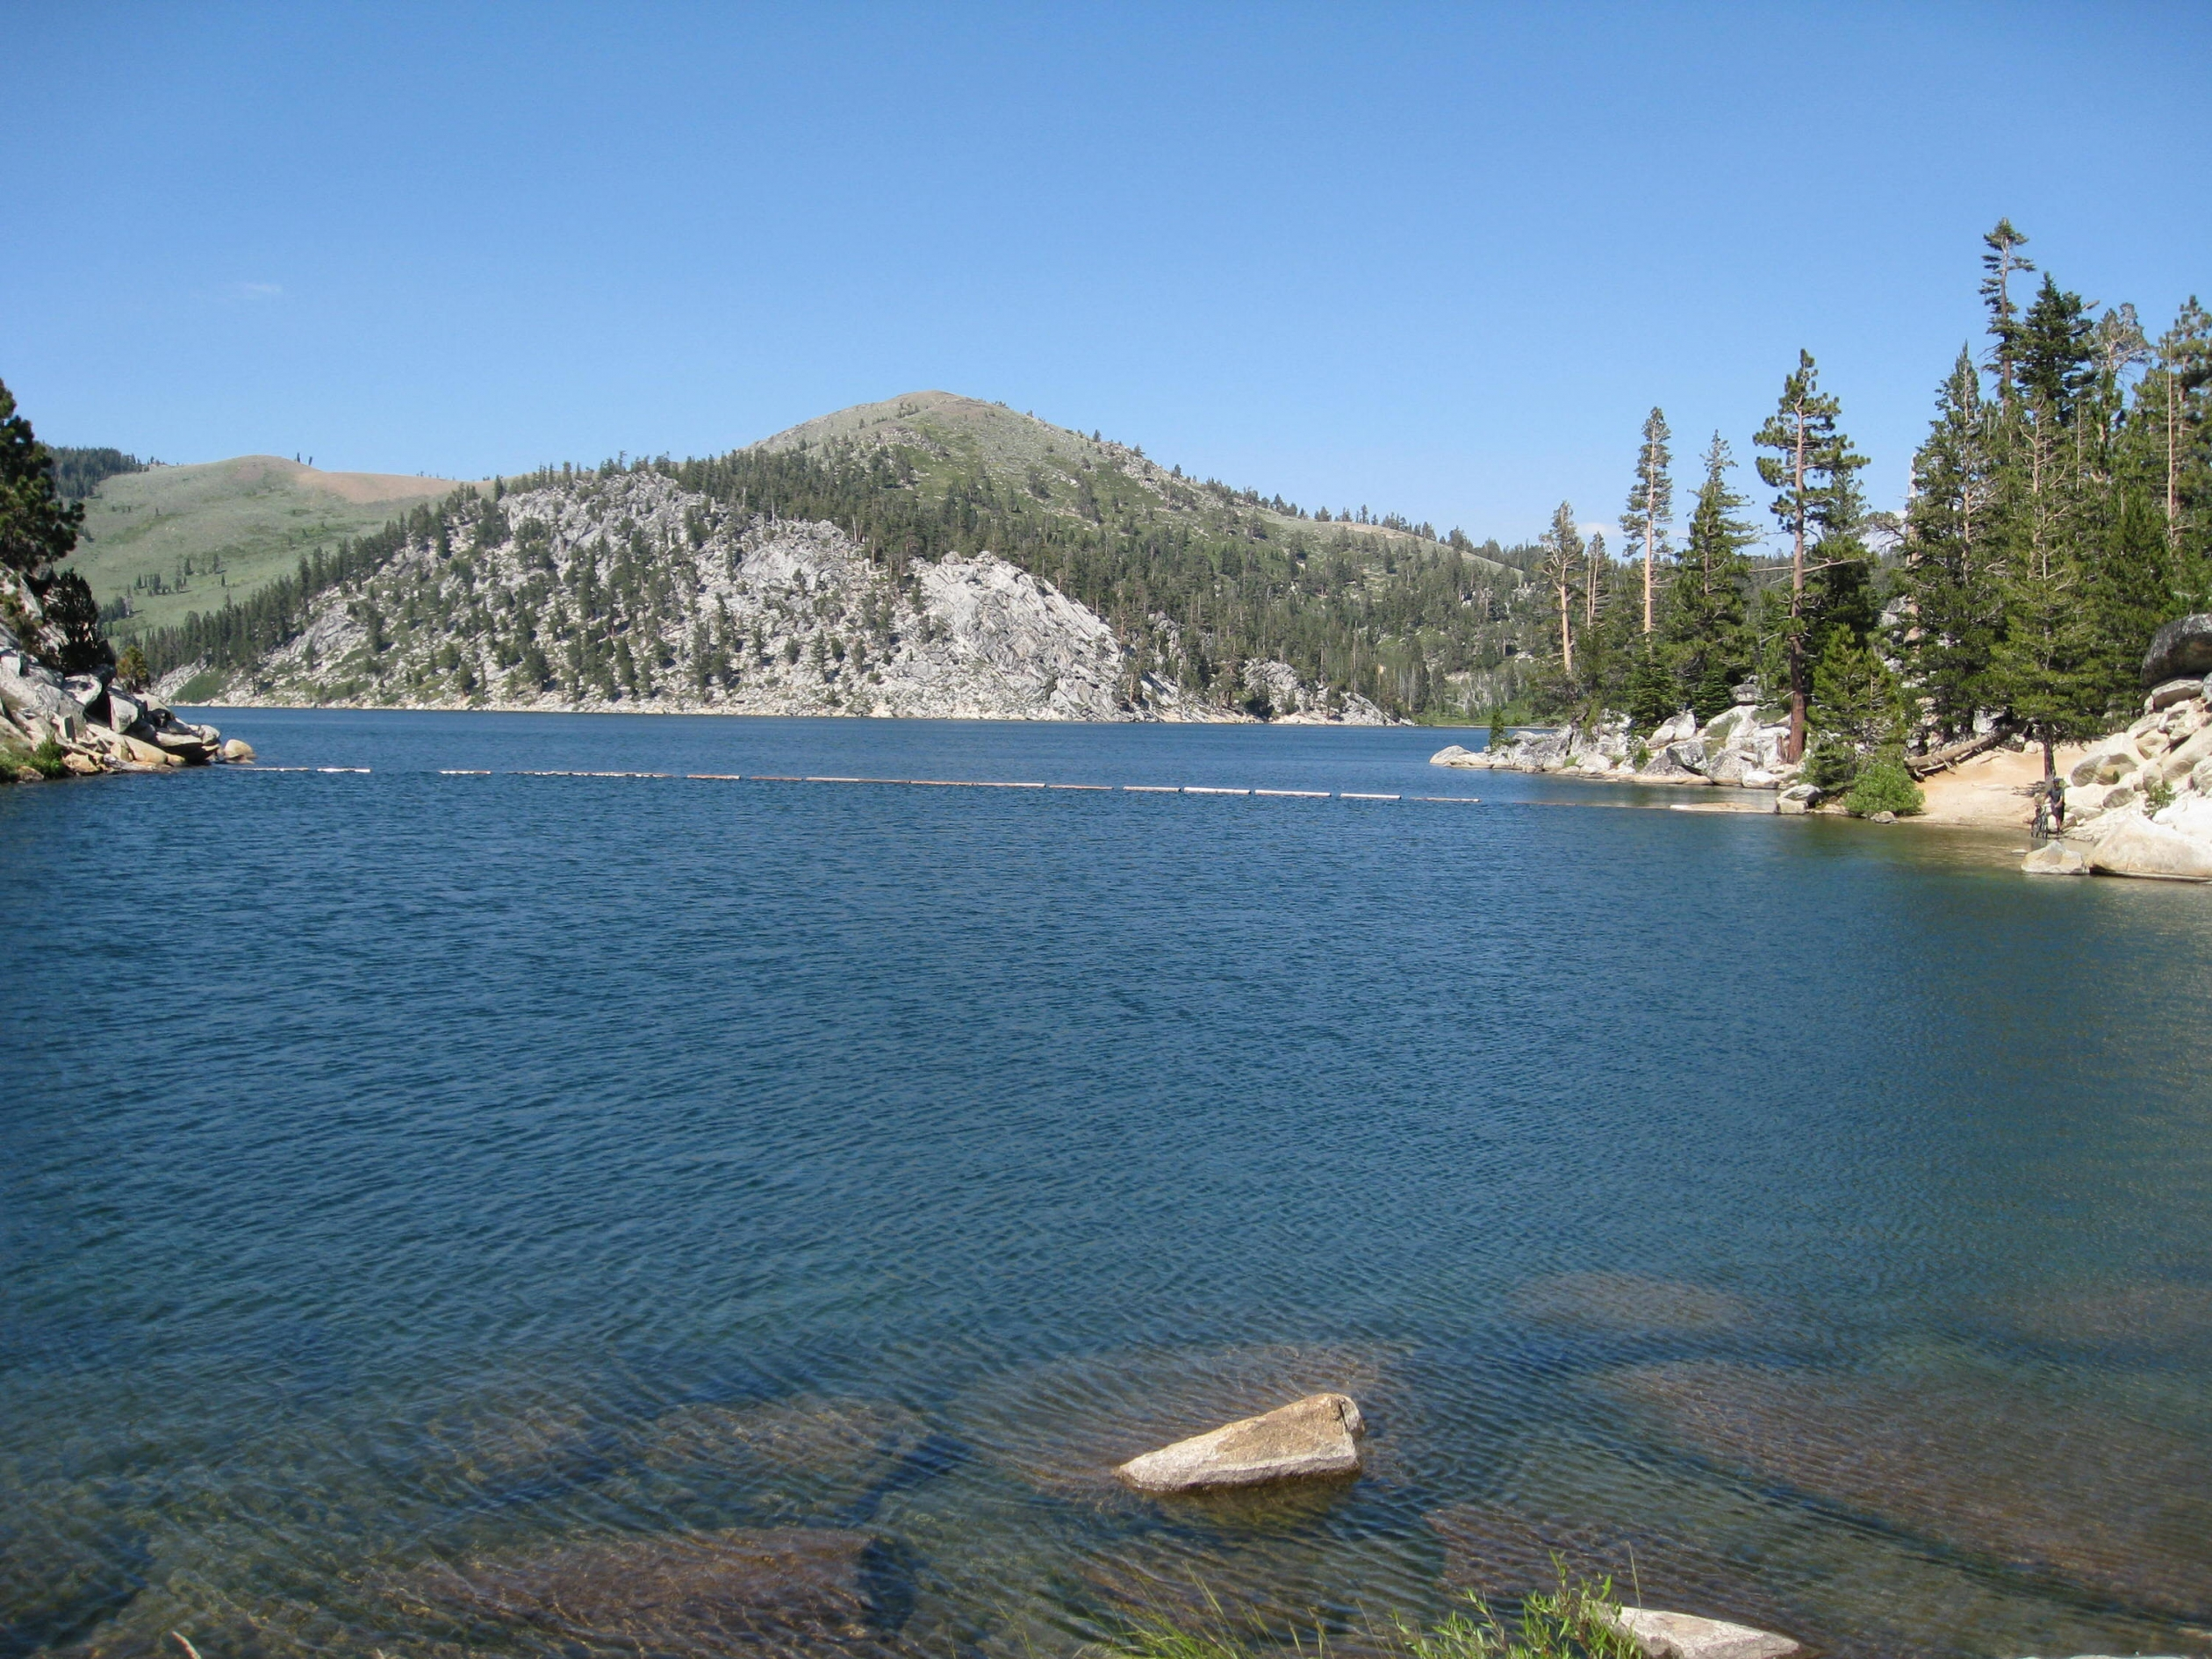 View across a blue lake sounded by grey granite mountains with evergreens at Marlette Lake along the Tahoe Rim Trail